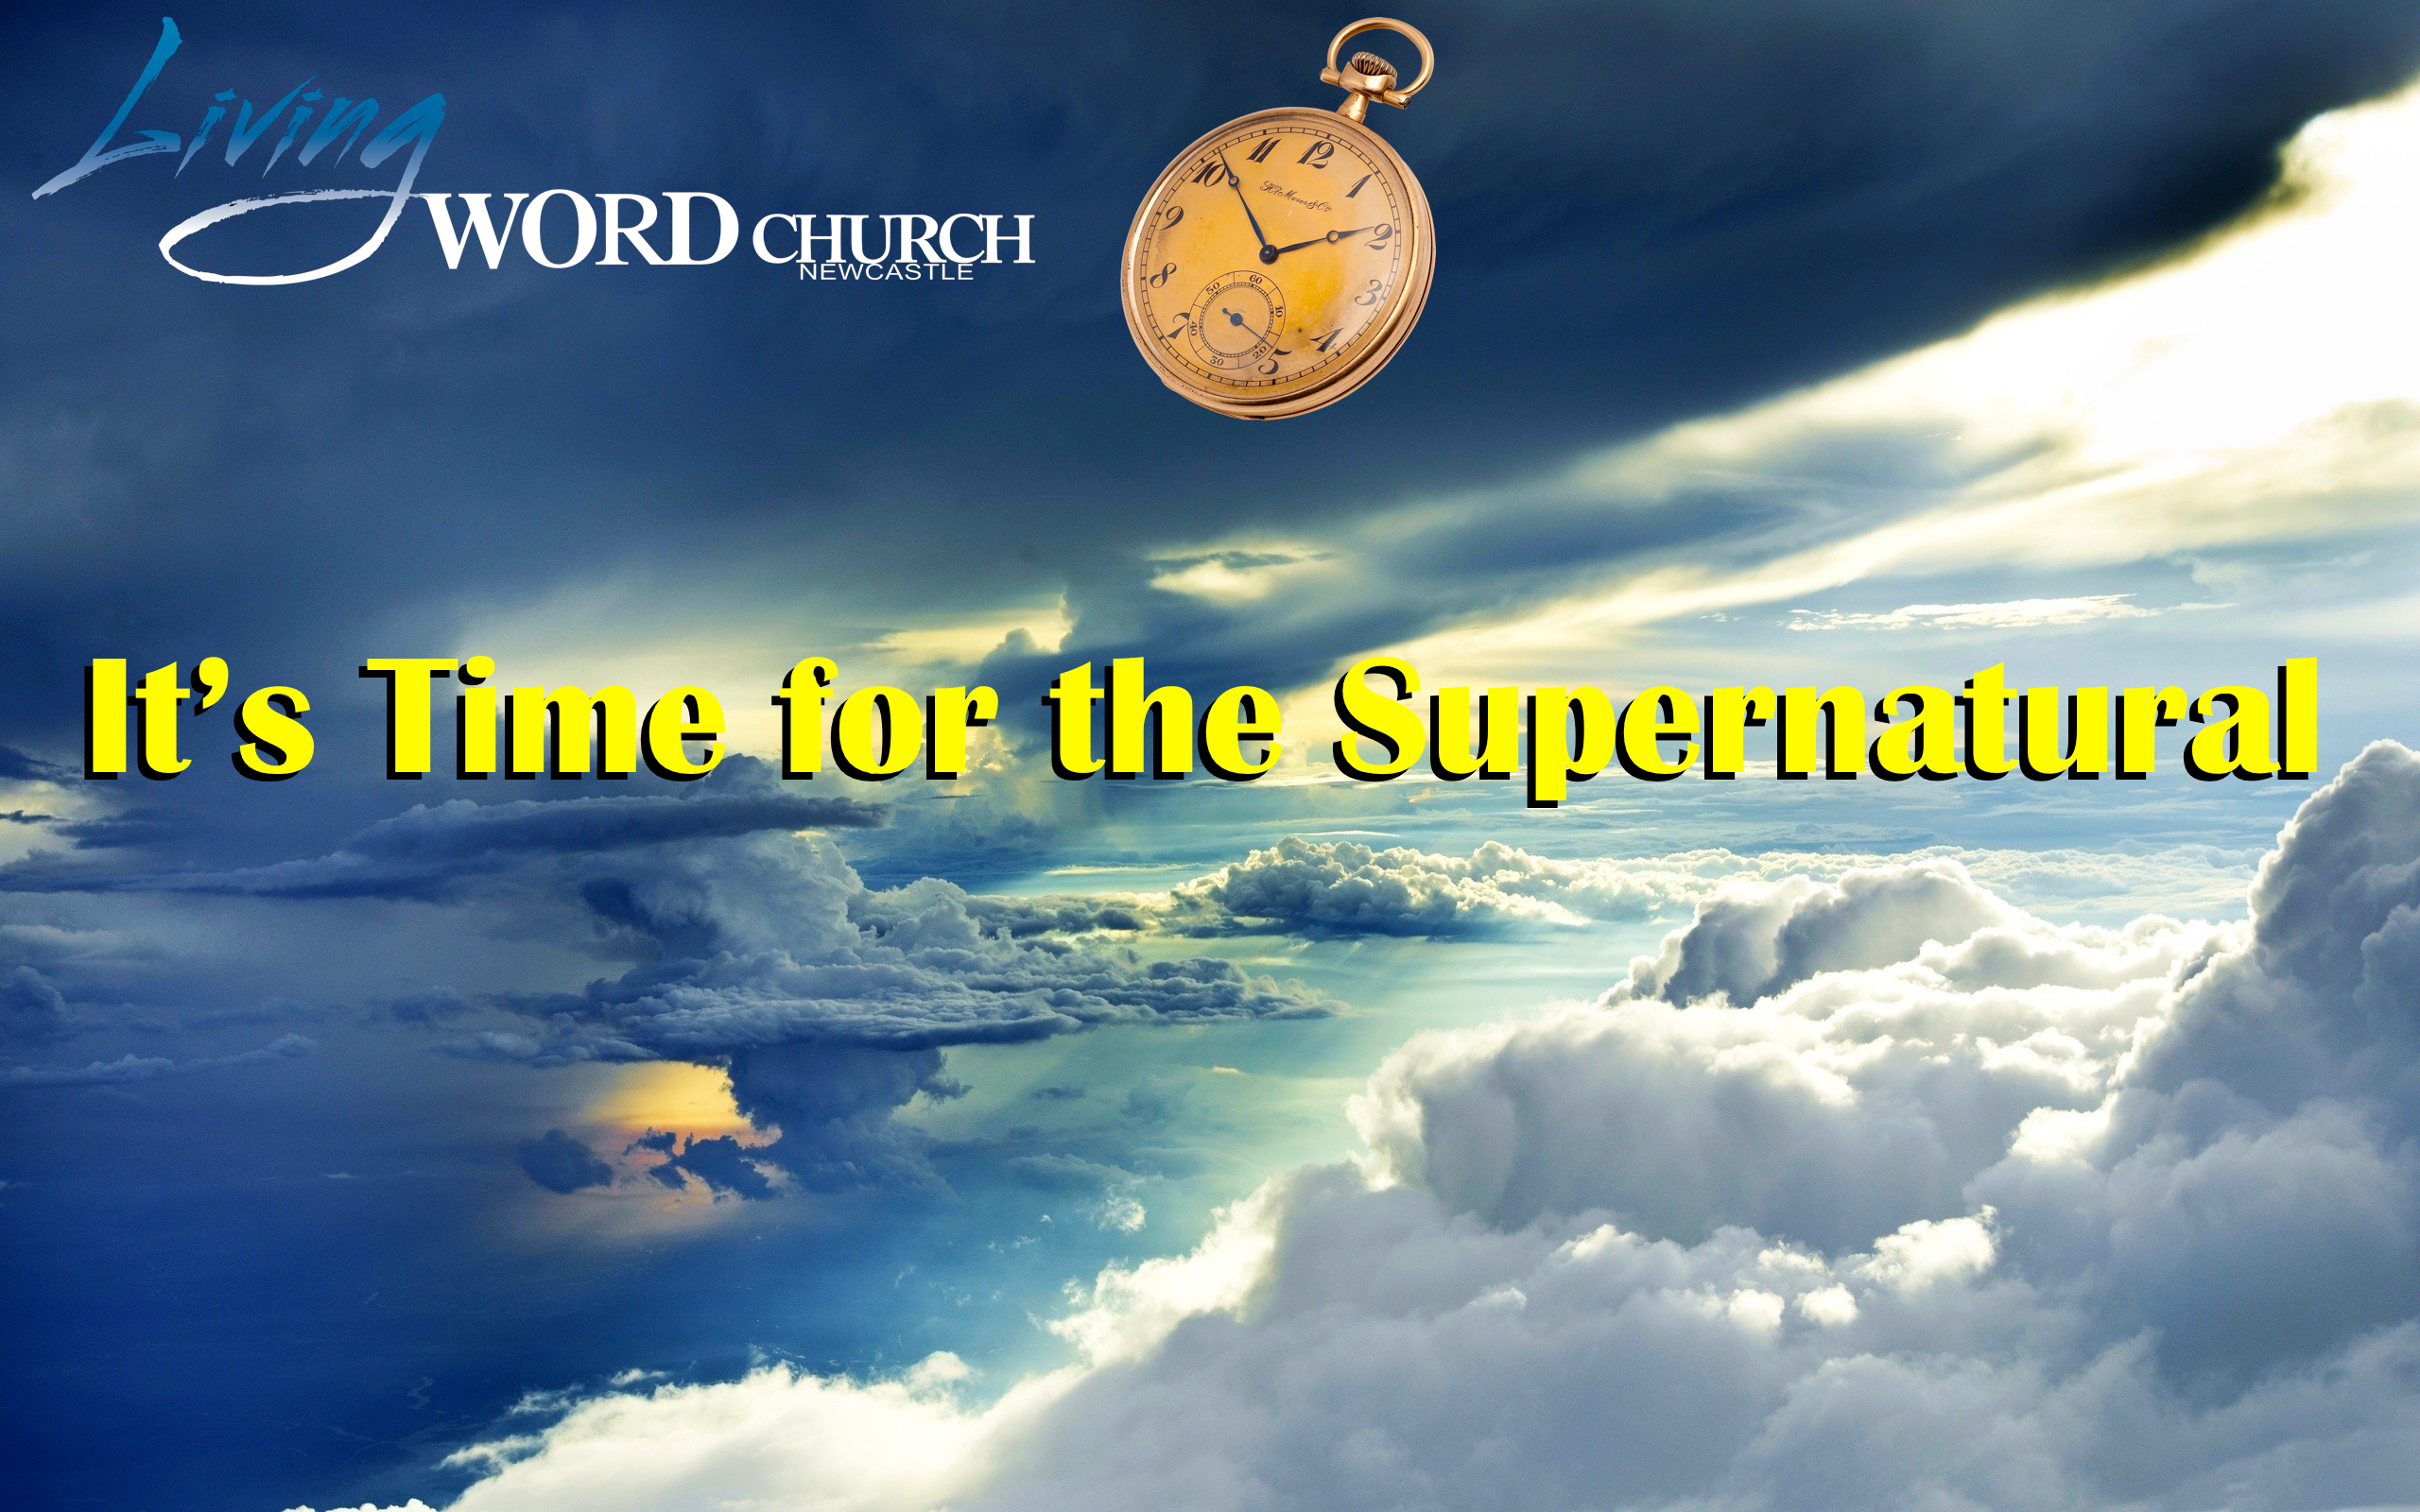 It's Time for the Supernatural (Part 1)